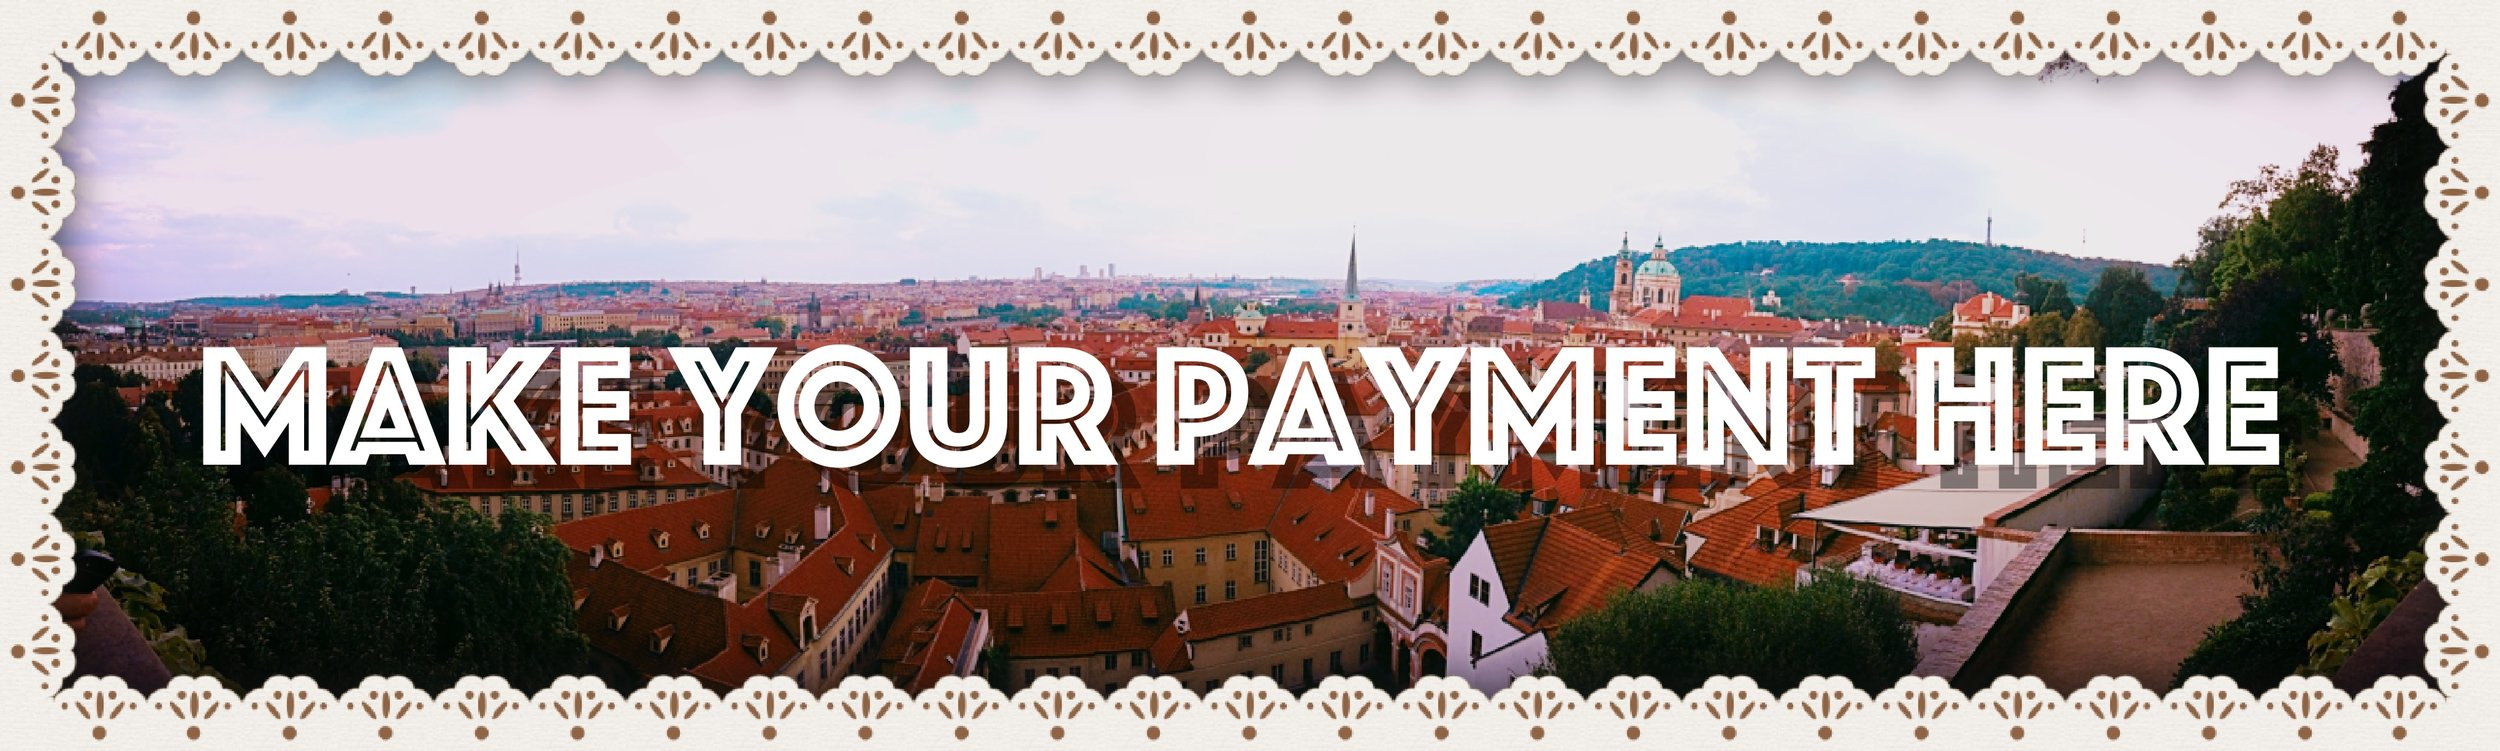 Make Your Payment Here.jpg